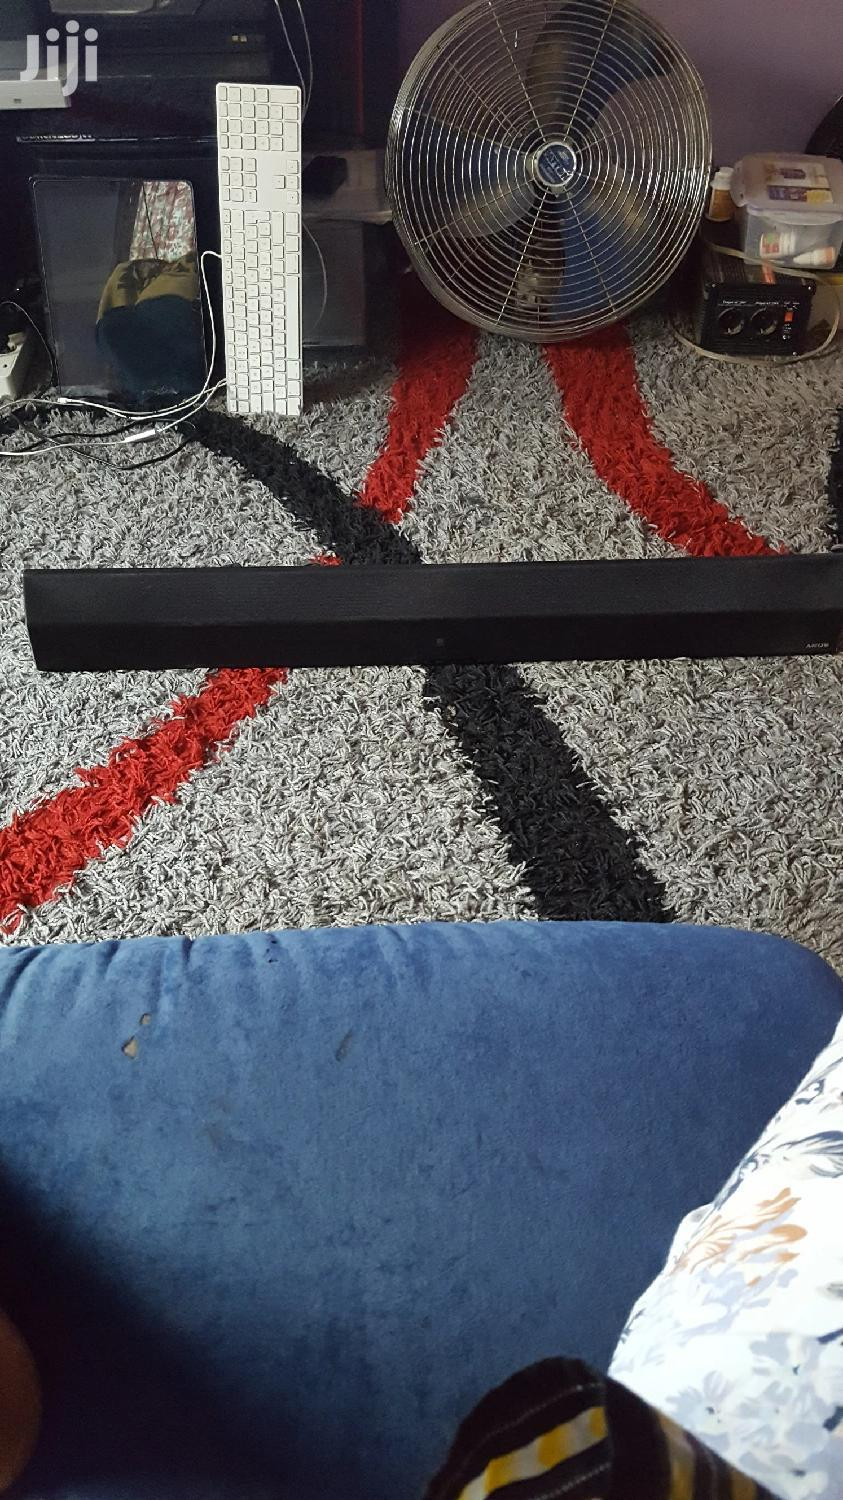 Sony Sound Bar | Audio & Music Equipment for sale in Dansoman, Greater Accra, Ghana